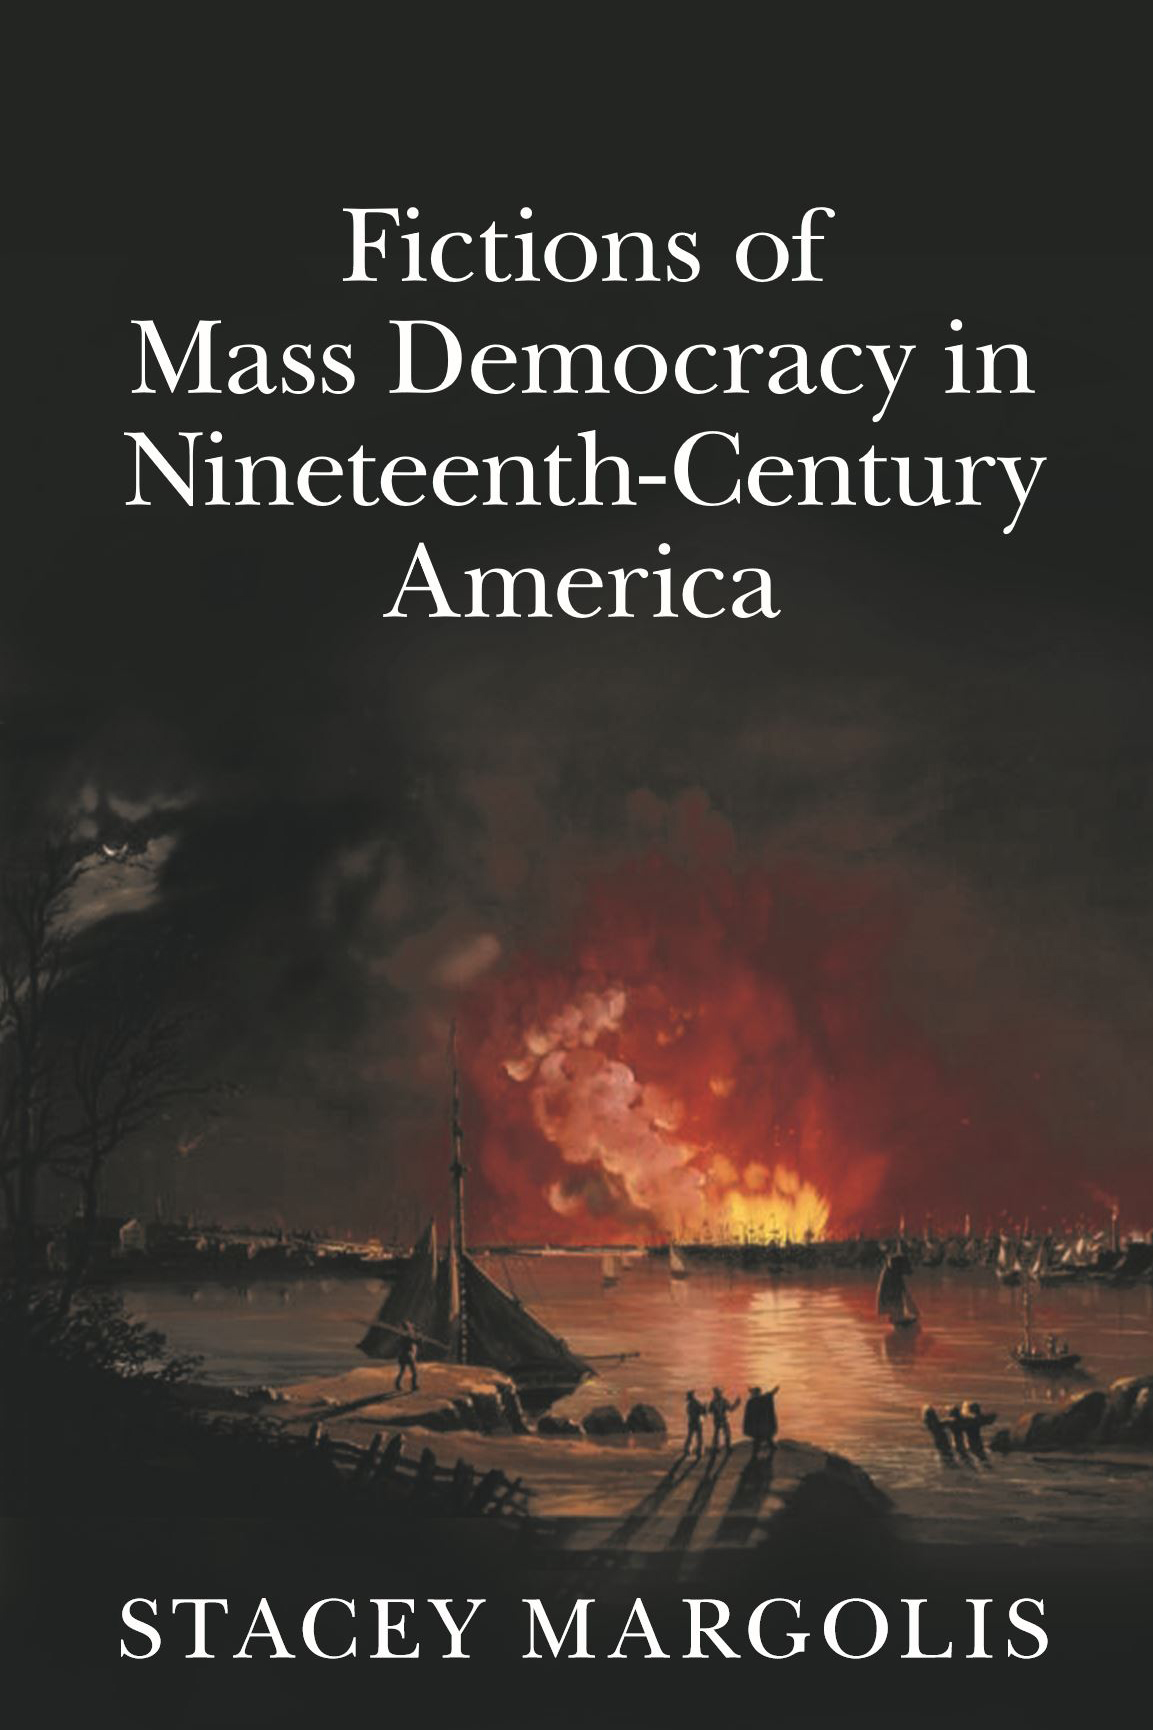 Fictions of Mass Democracy in Nineteenth-Century American by Stacey Margolis